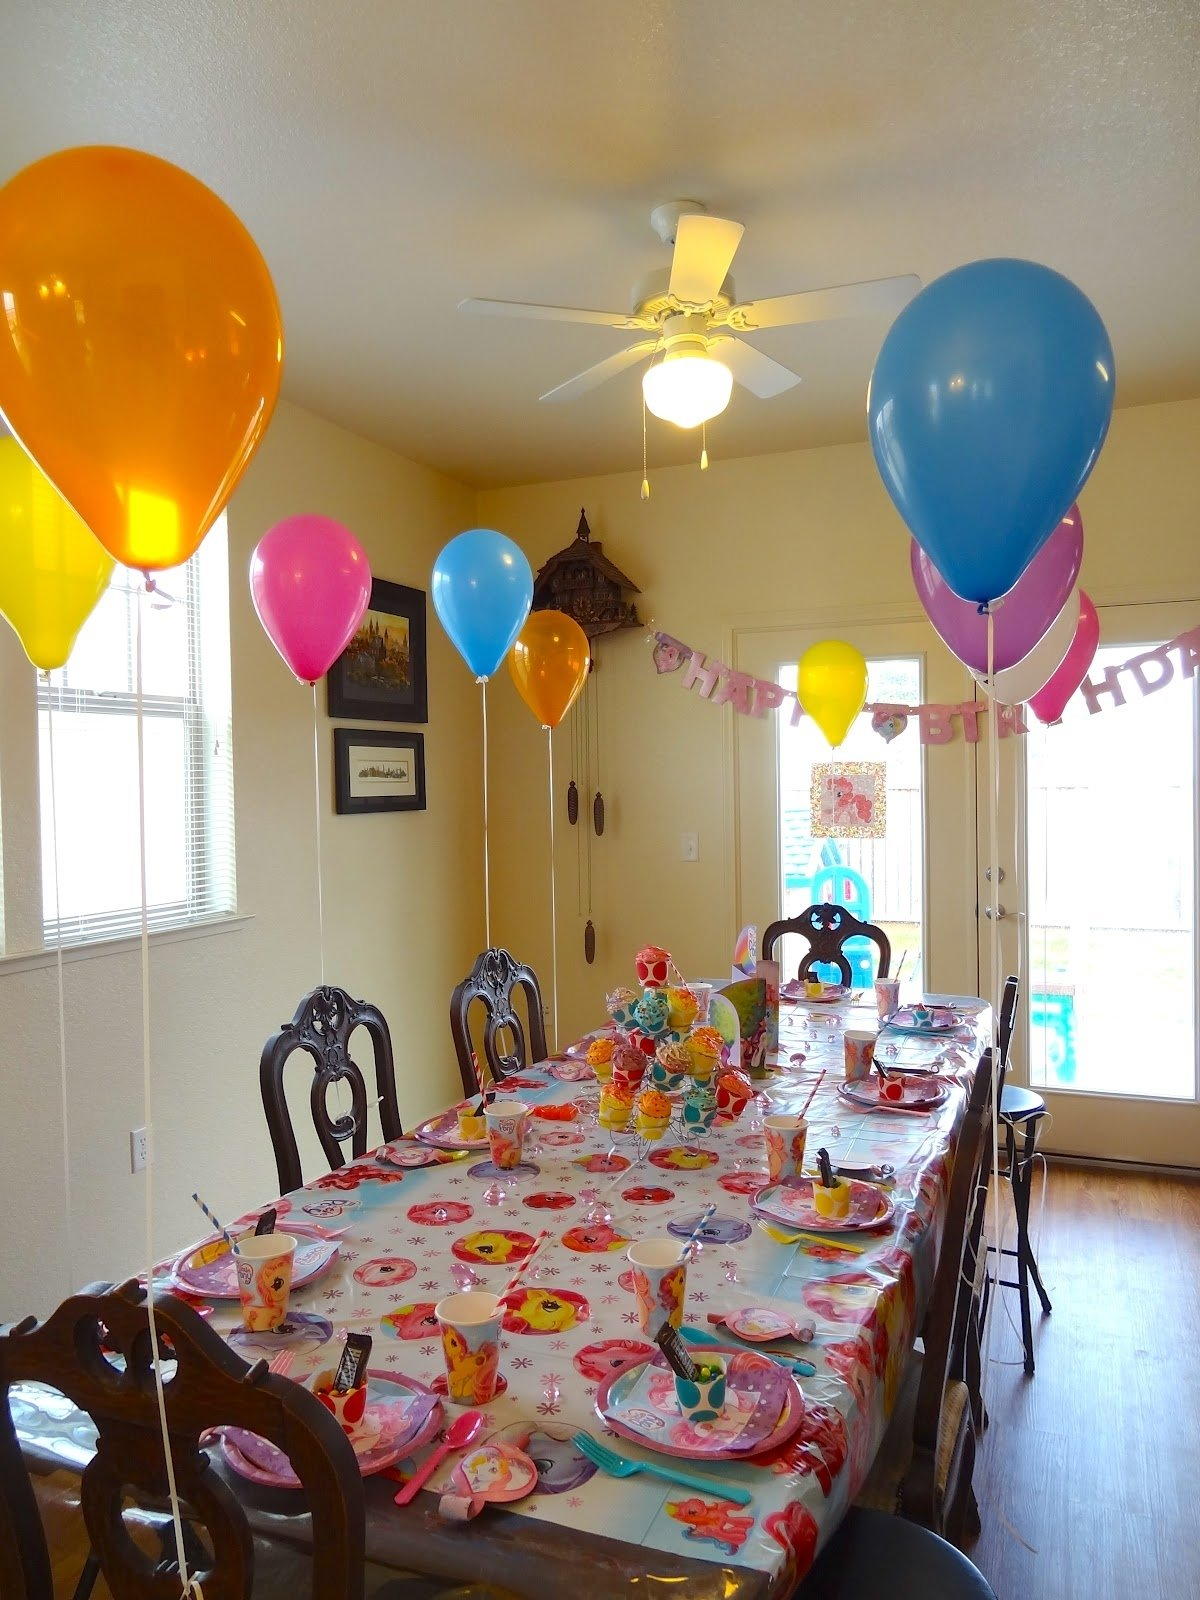 10 Stunning 4 Year Old Party Ideas welcome to the krazy kingdom tayas 5th birthday party my little pony 2